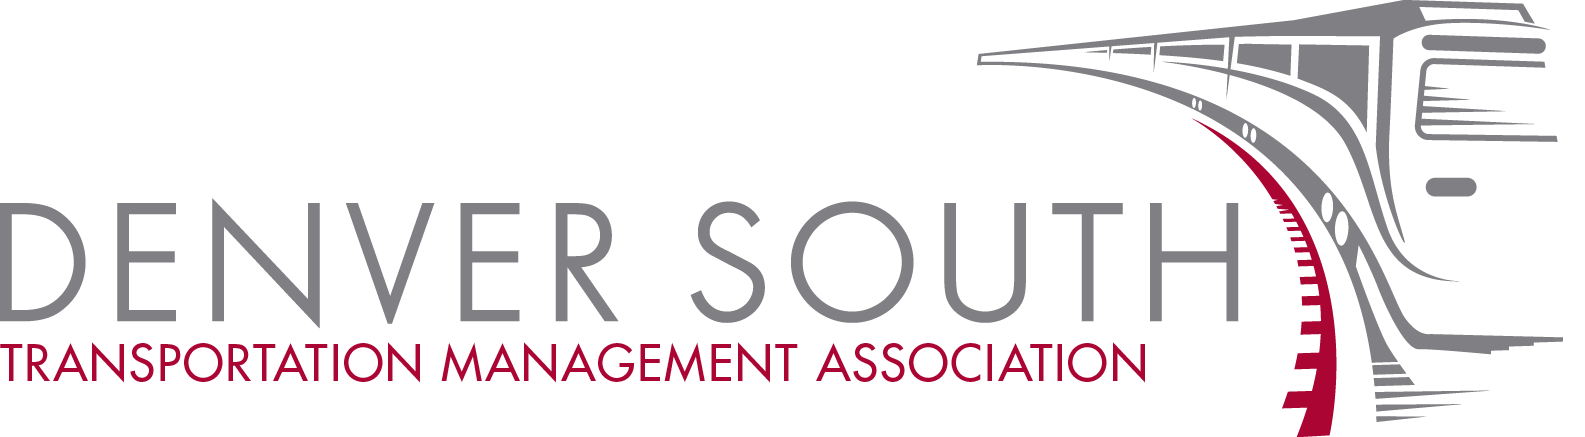 Denver South Transportation Management Association logo